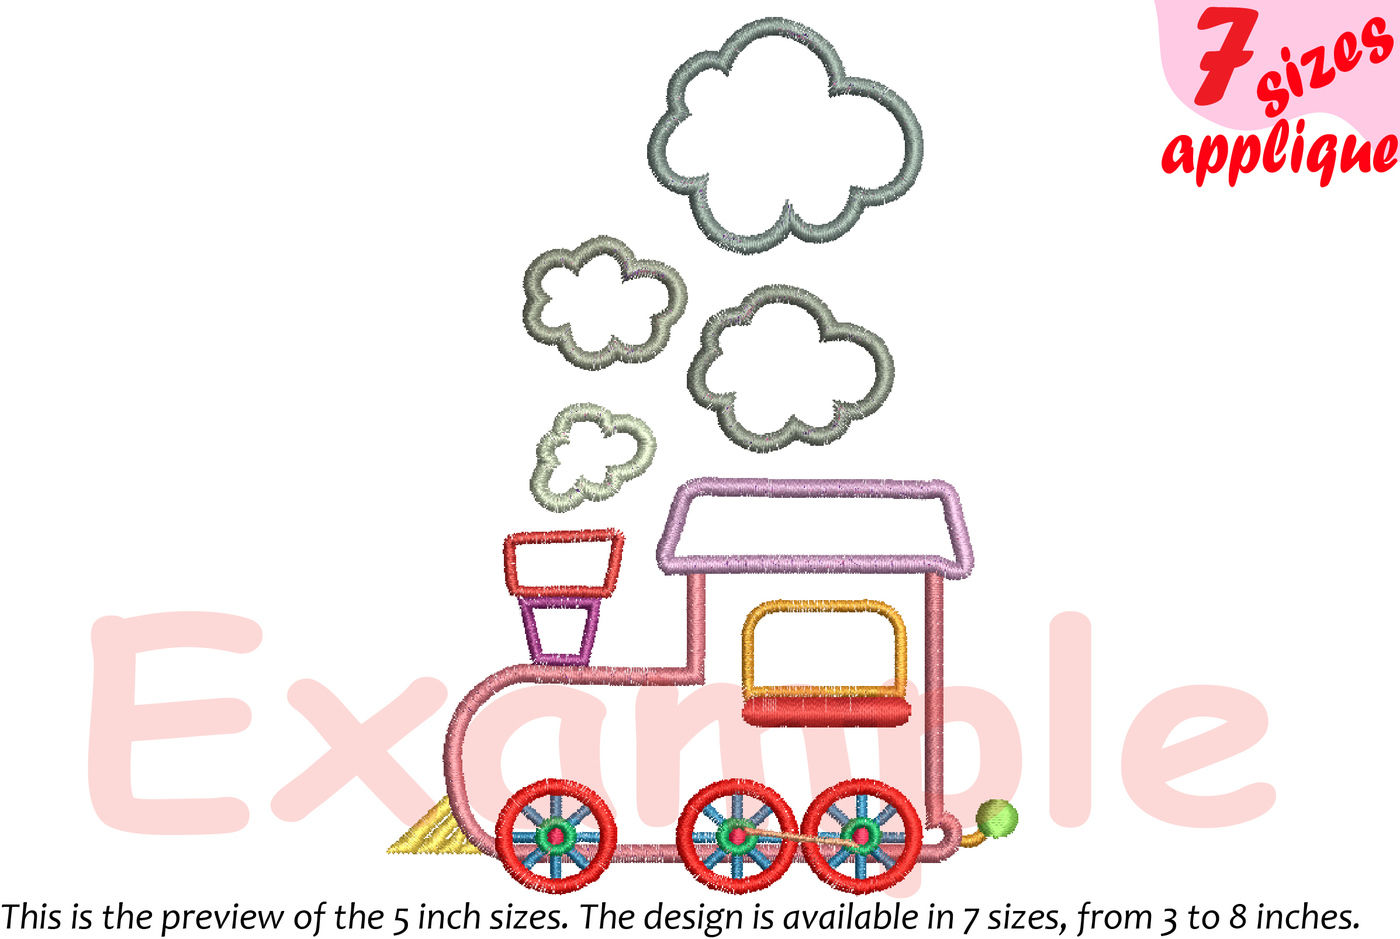 Train Toy Applique Designs For Embroidery Outline 20a By Hamhamart